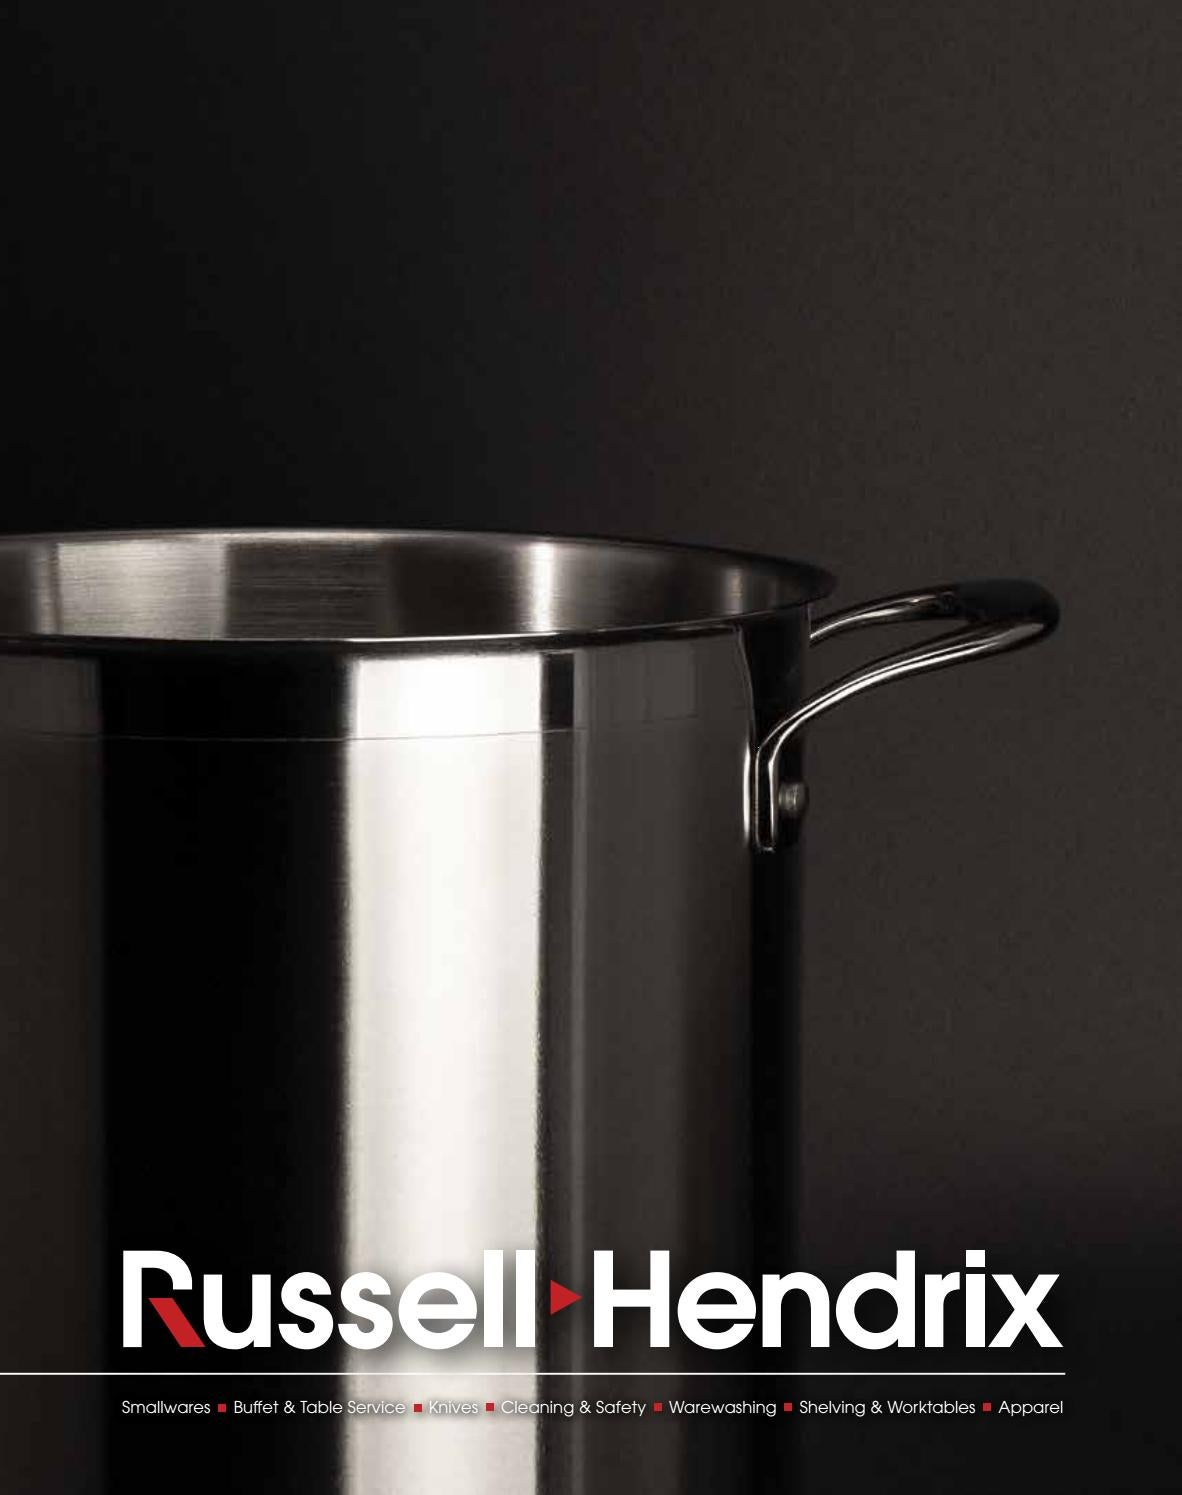 Russell Hendrix Smallwares Catalogue by Russell Hendrix Foodservice  Equipment   Supplies - issuu ef8b5a037f788